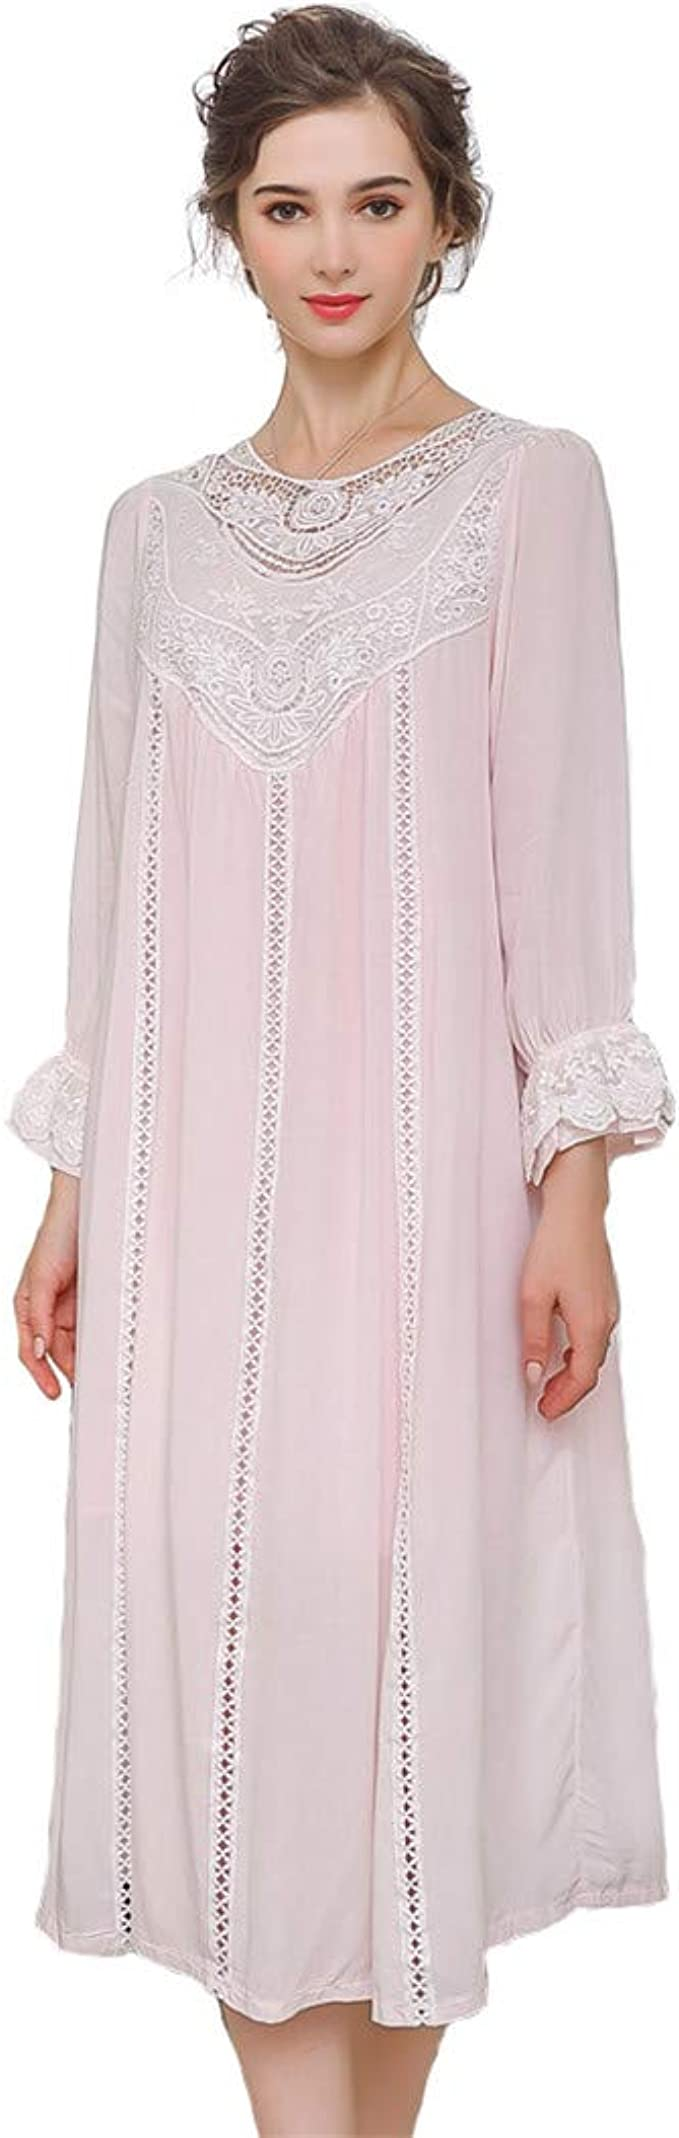 Vintage Nightgowns, Pajamas, Baby Dolls, Robes Womens Vintage Victorian Sleepwear Sleeveless/Short/Long Sleeve Sheer Nightgown Pajamas Nightwear Lounge Dress $41.99 AT vintagedancer.com